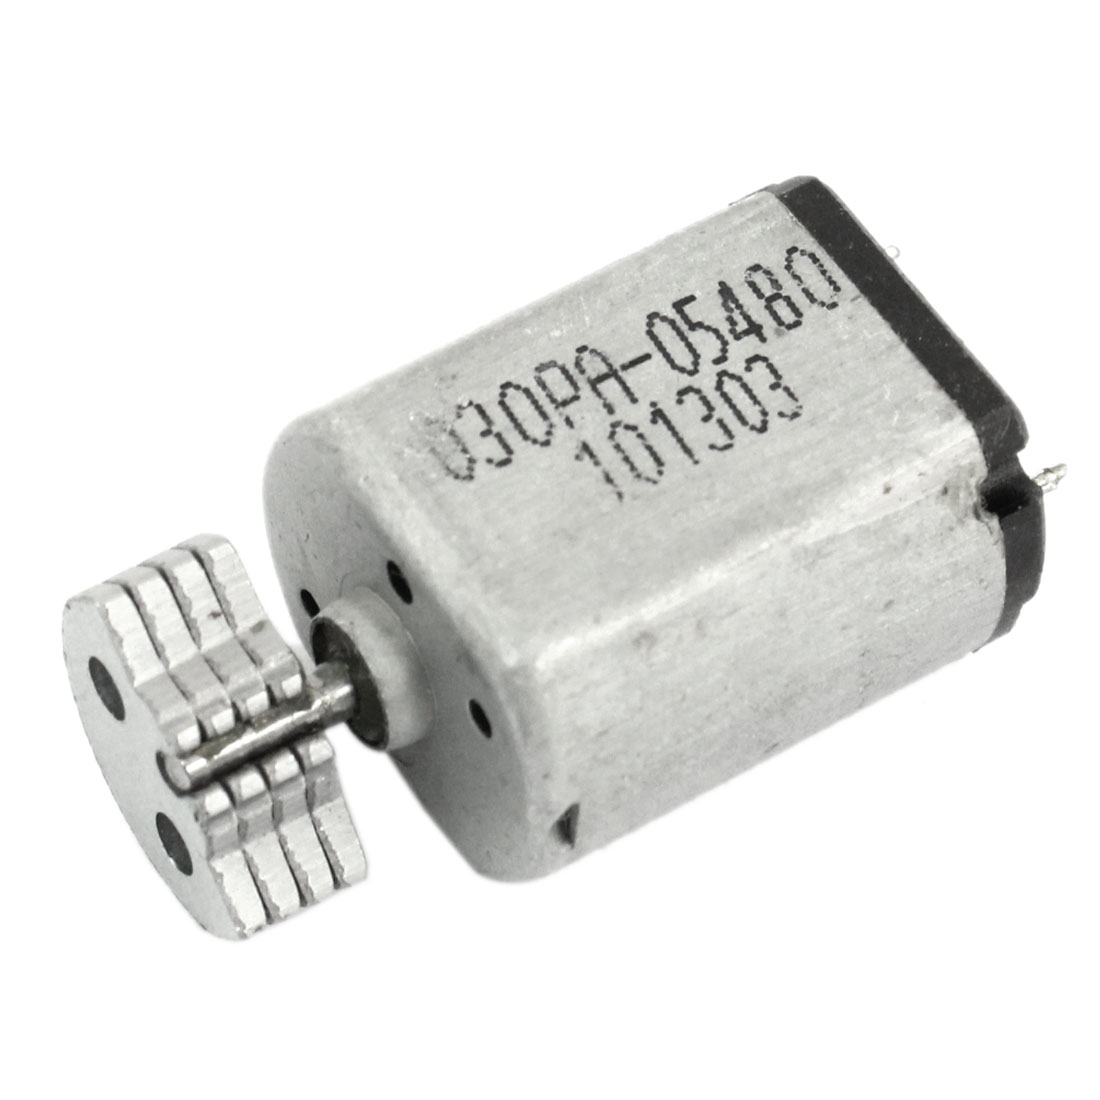 DC 1.5V-9V 0.08A 3200RPM Output Speed Micro Vibrating Motor 18x15x12mm